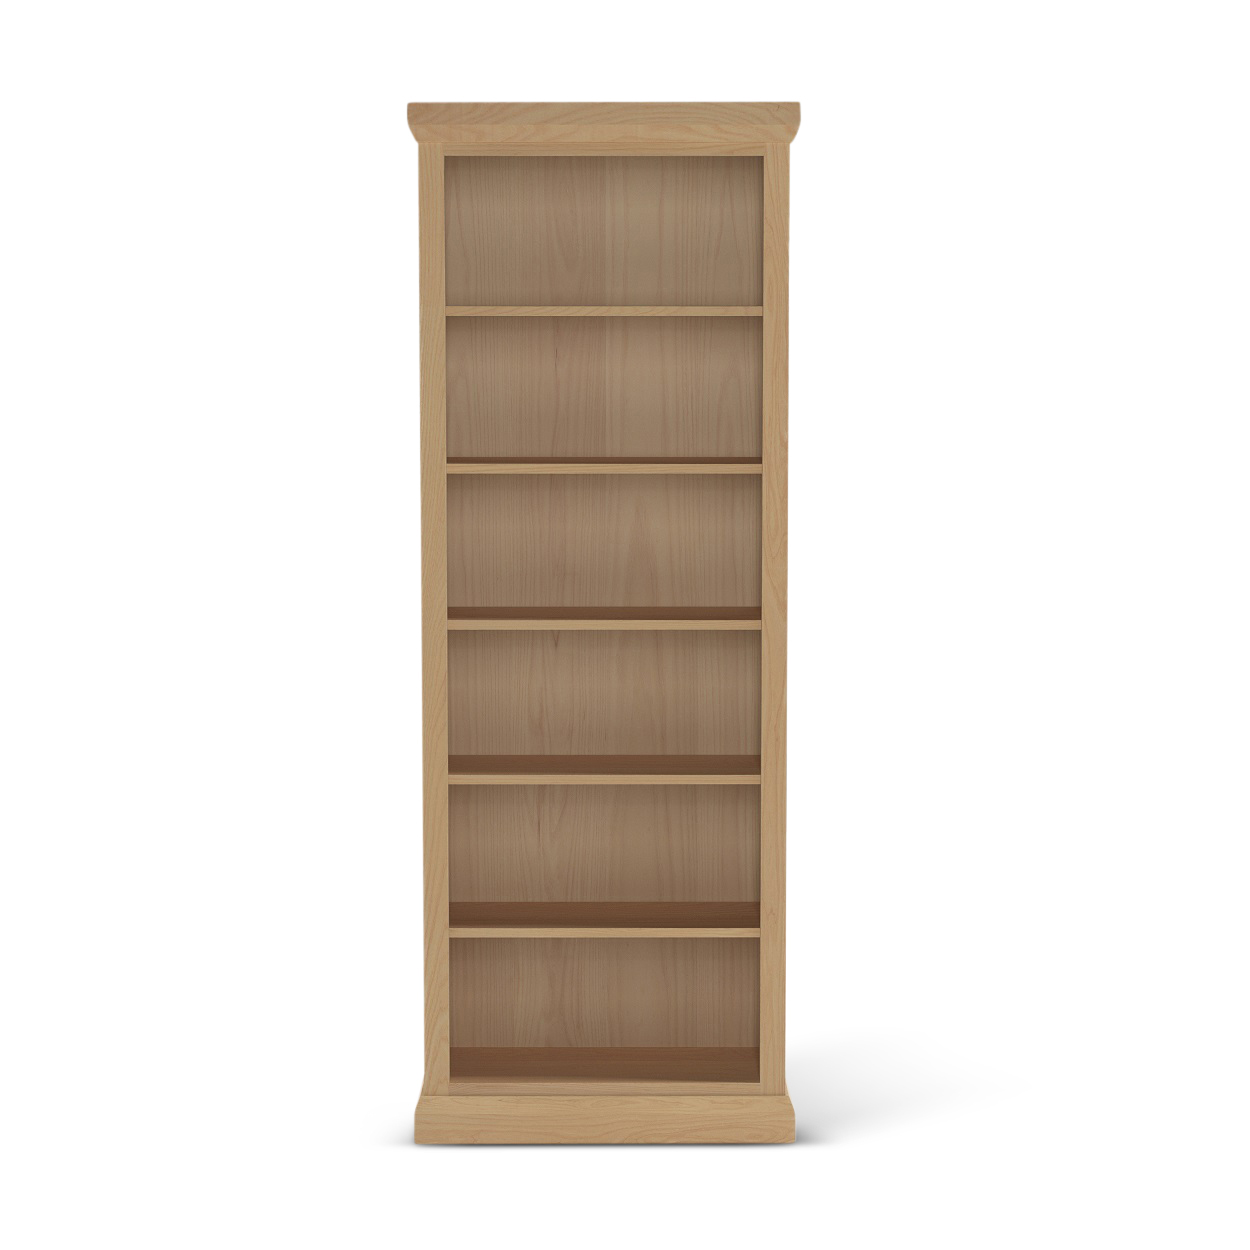 "78"" tall Bureau ash wood contemporary Nordic bookshelf"